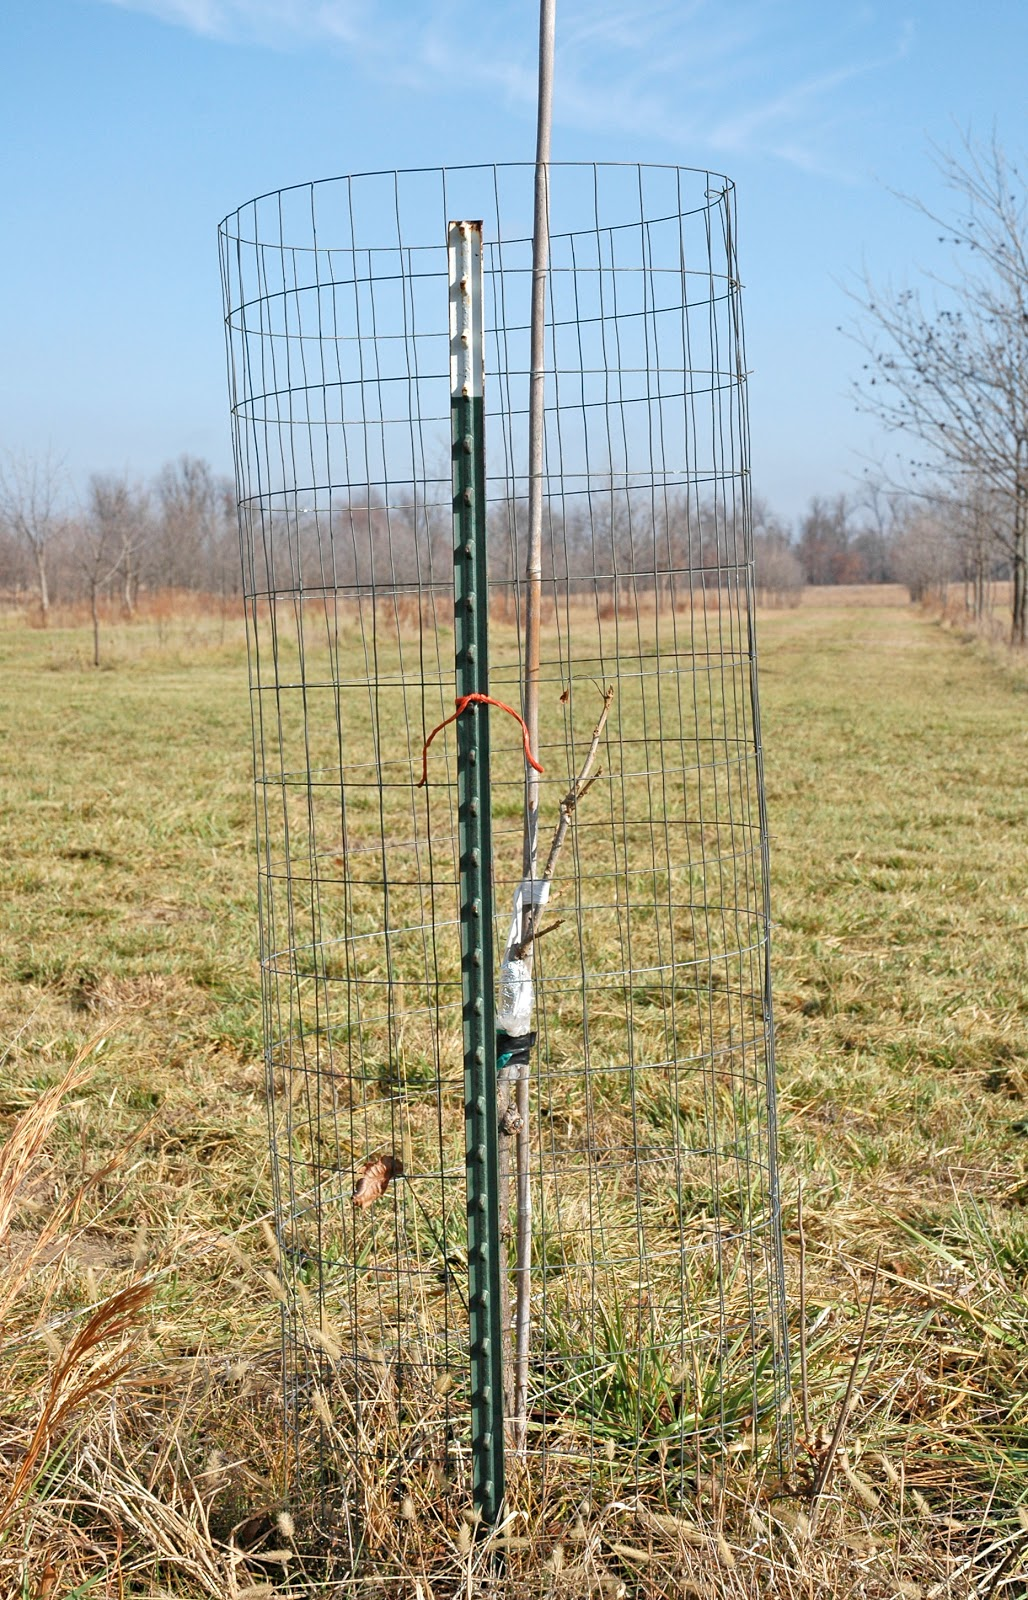 Tree Wire Cage Center Triac Schematics Group Picture Image By Tag Keywordpicturescom Northern Pecans Protecting Young Pecan Trees Against Deer Damage Rh Northernpecans Blogspot Com Three Central